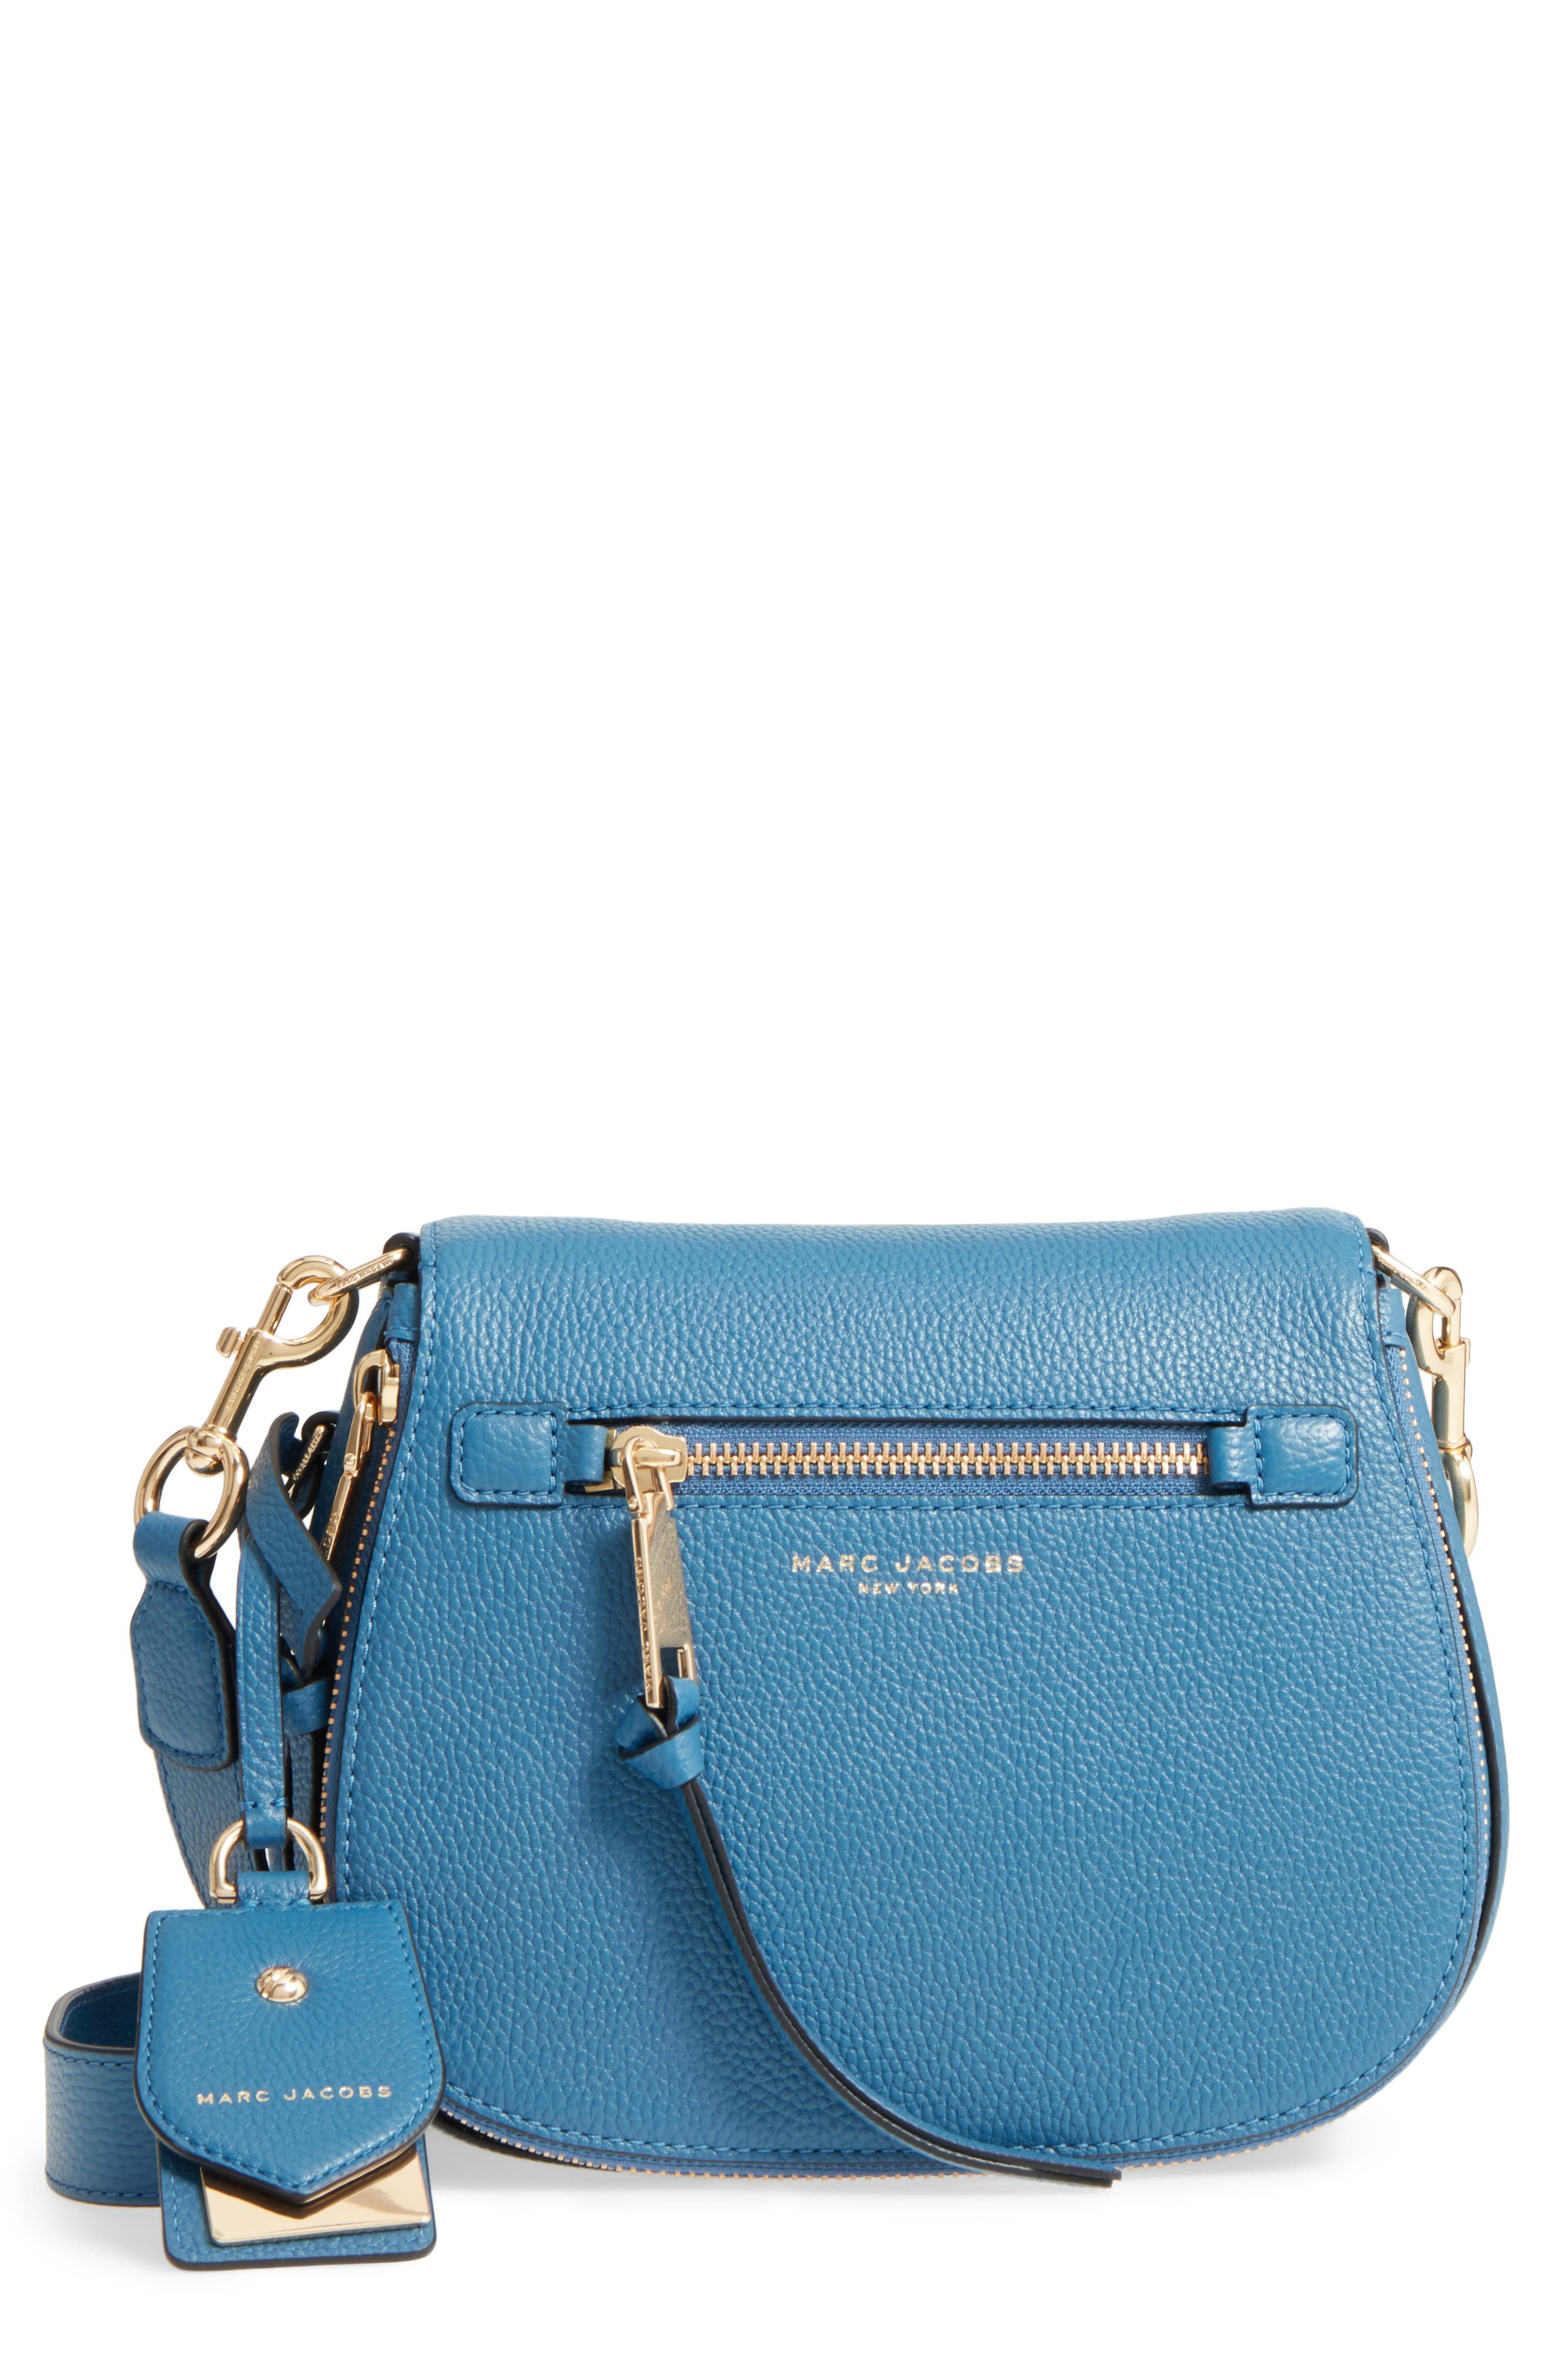 Small Recruit Nomad Pebbled Leather Crossbody Bag,                         Main,                         color,